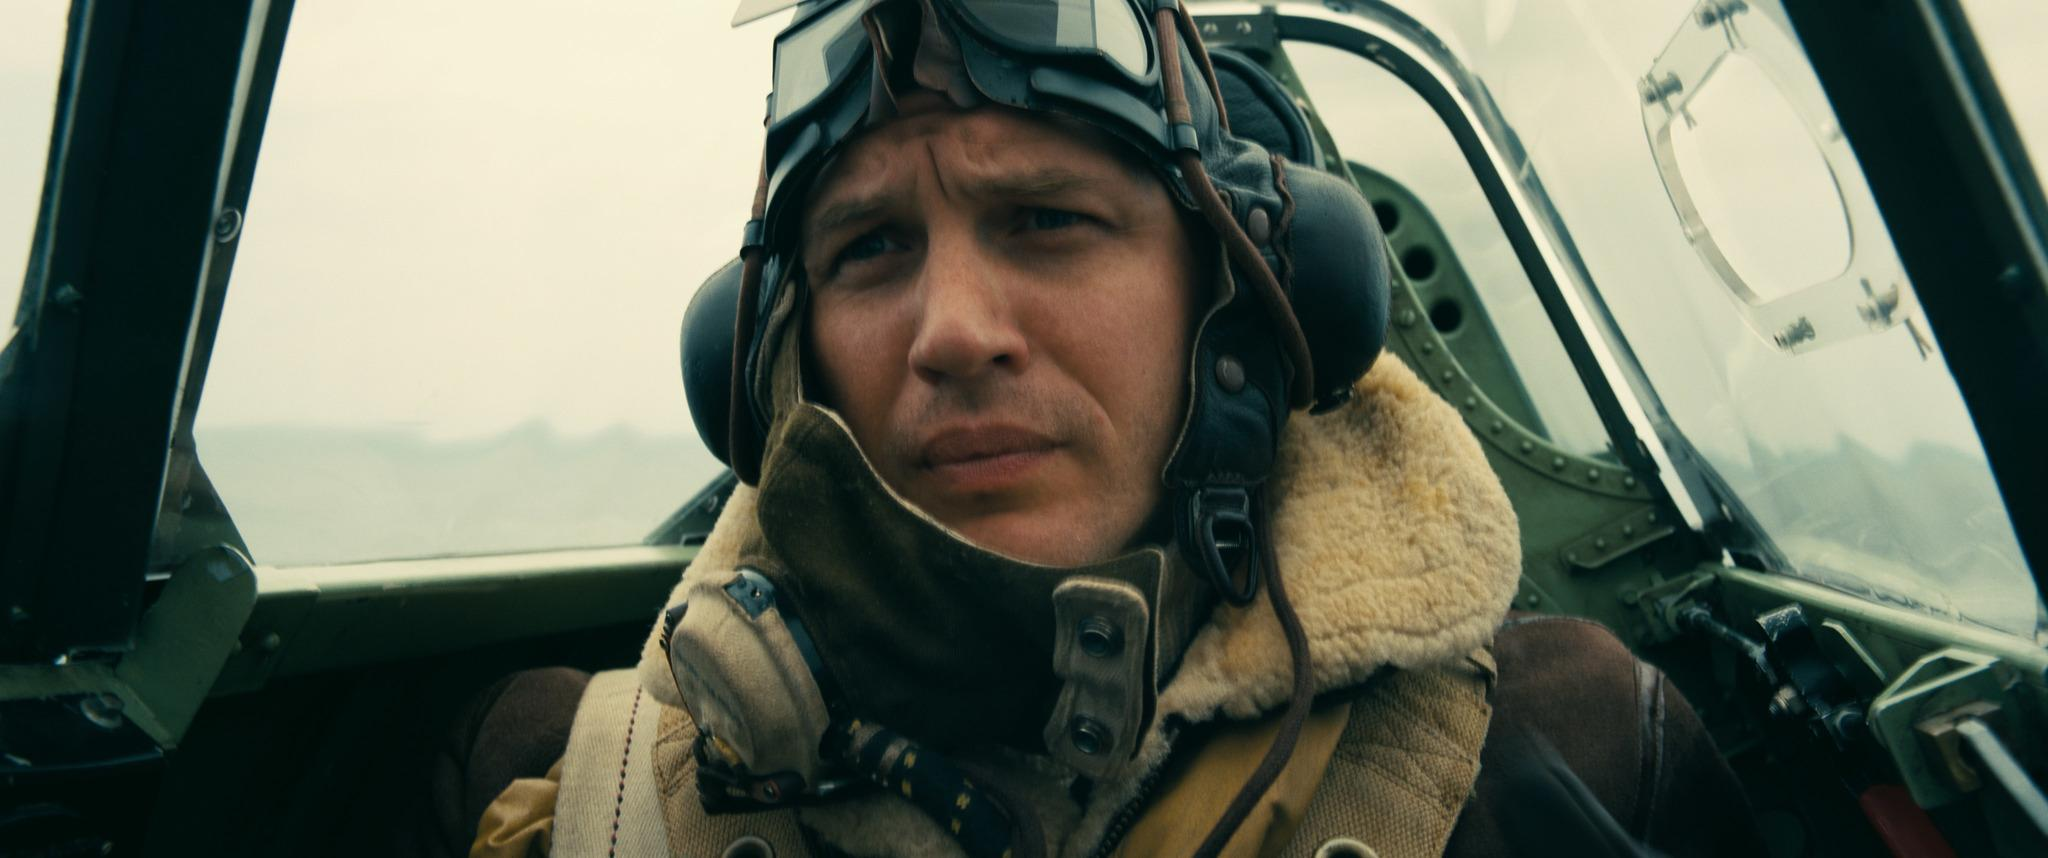 Tom Hardy plays a pilot in 'Dunkirk.' Photo courtesy of Warner Bros. Pictures